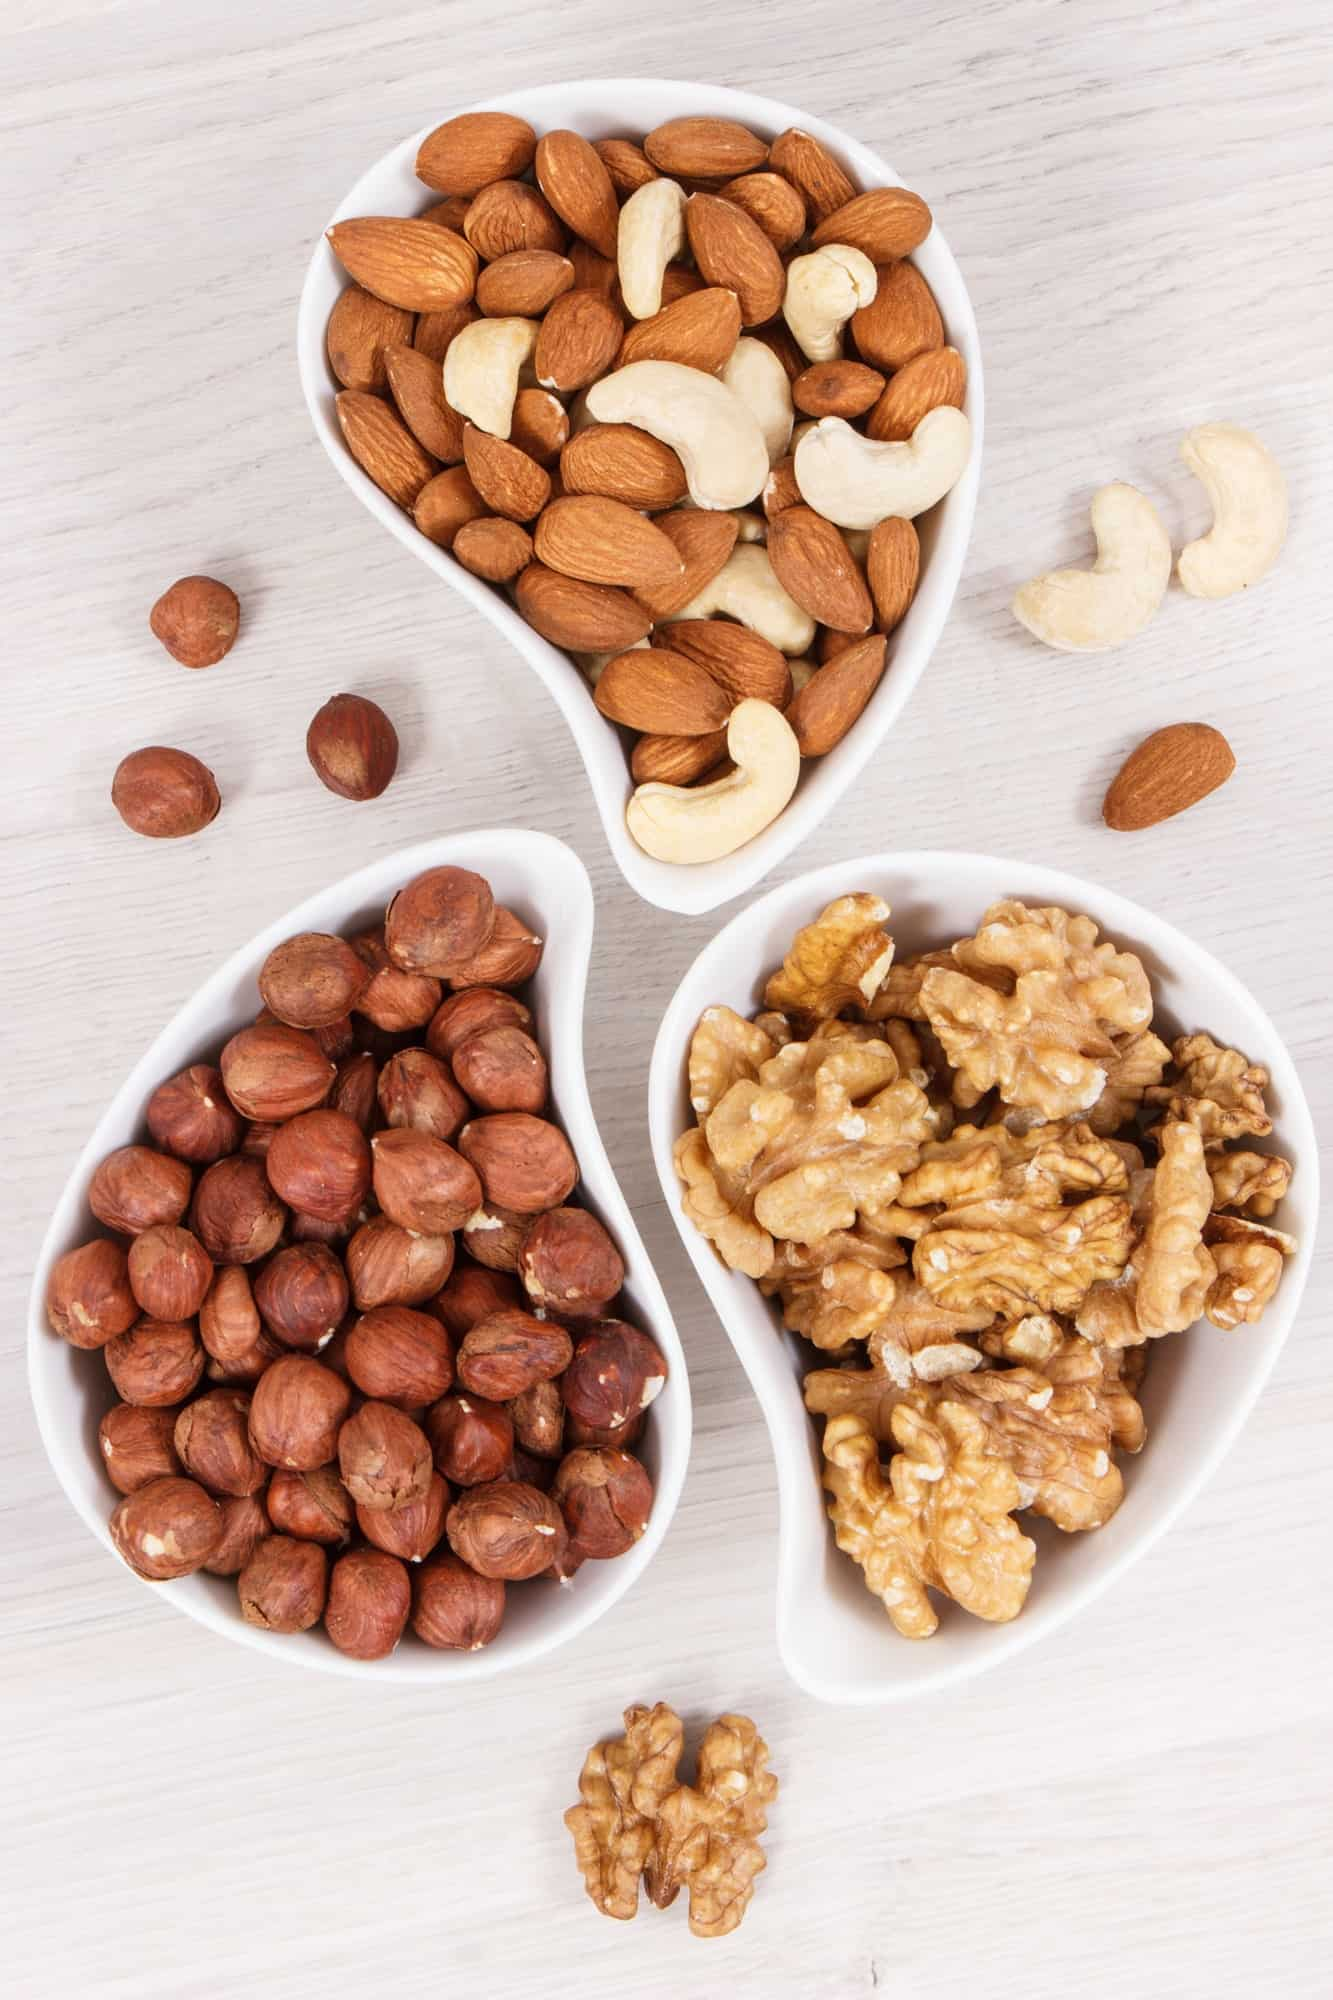 Different nuts and almonds as source vitamins and minerals